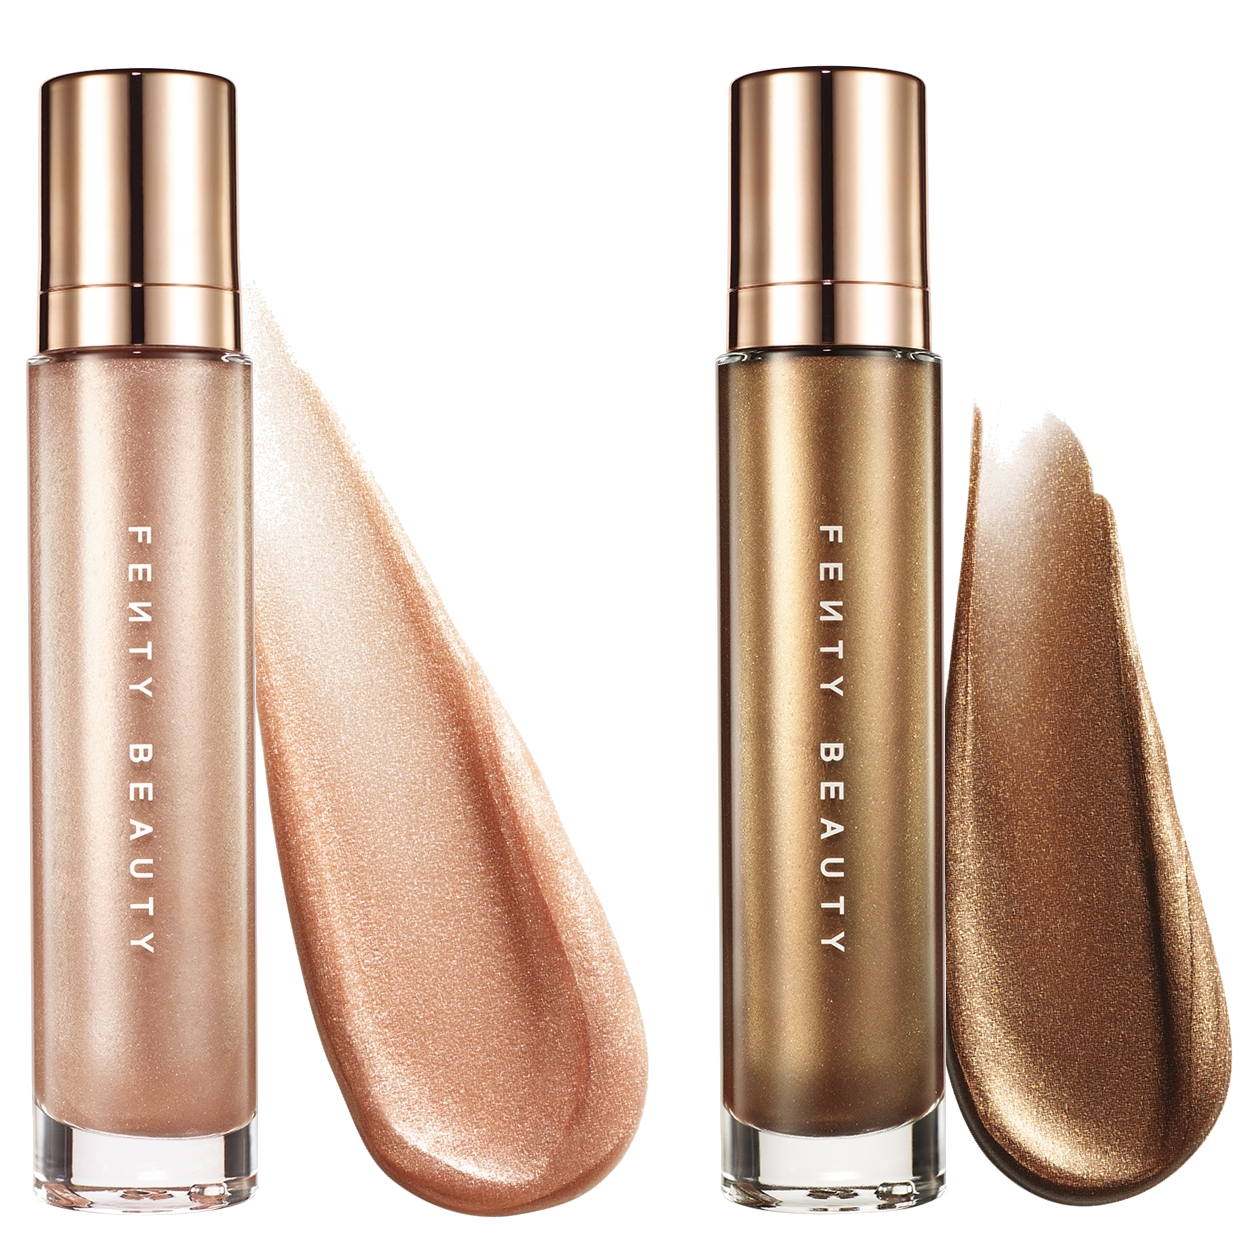 fenty-beauty-body-luminizer